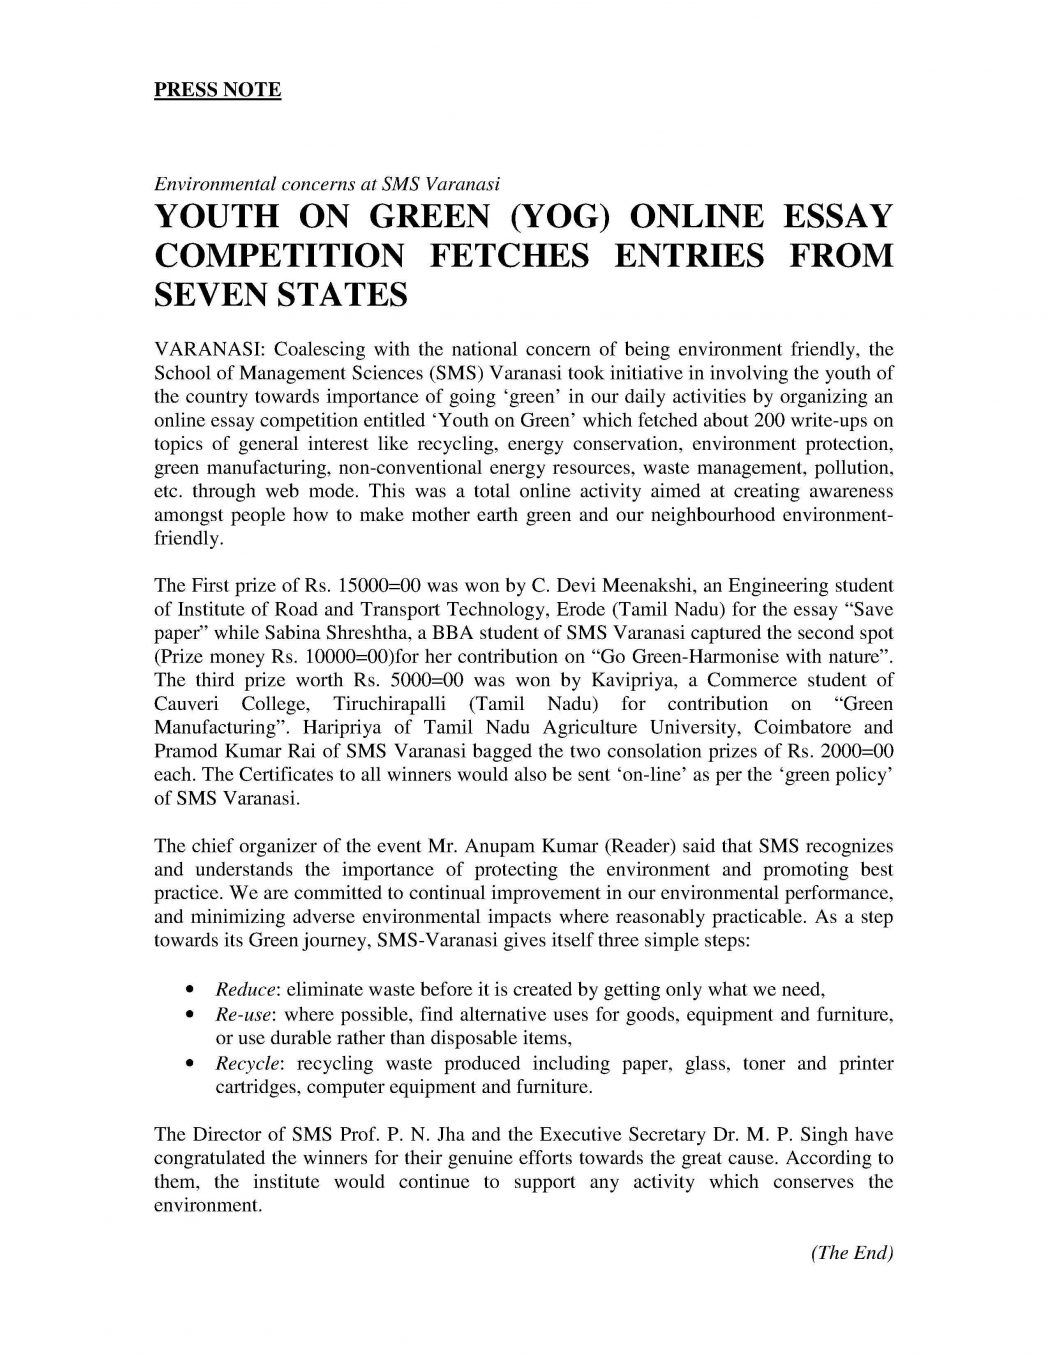 008 Healthy Food Essay Essays Eating Organizations Online Yog Press Re Block 1048x1356 Best Habits In Hindi Health English And Unhealthy Full